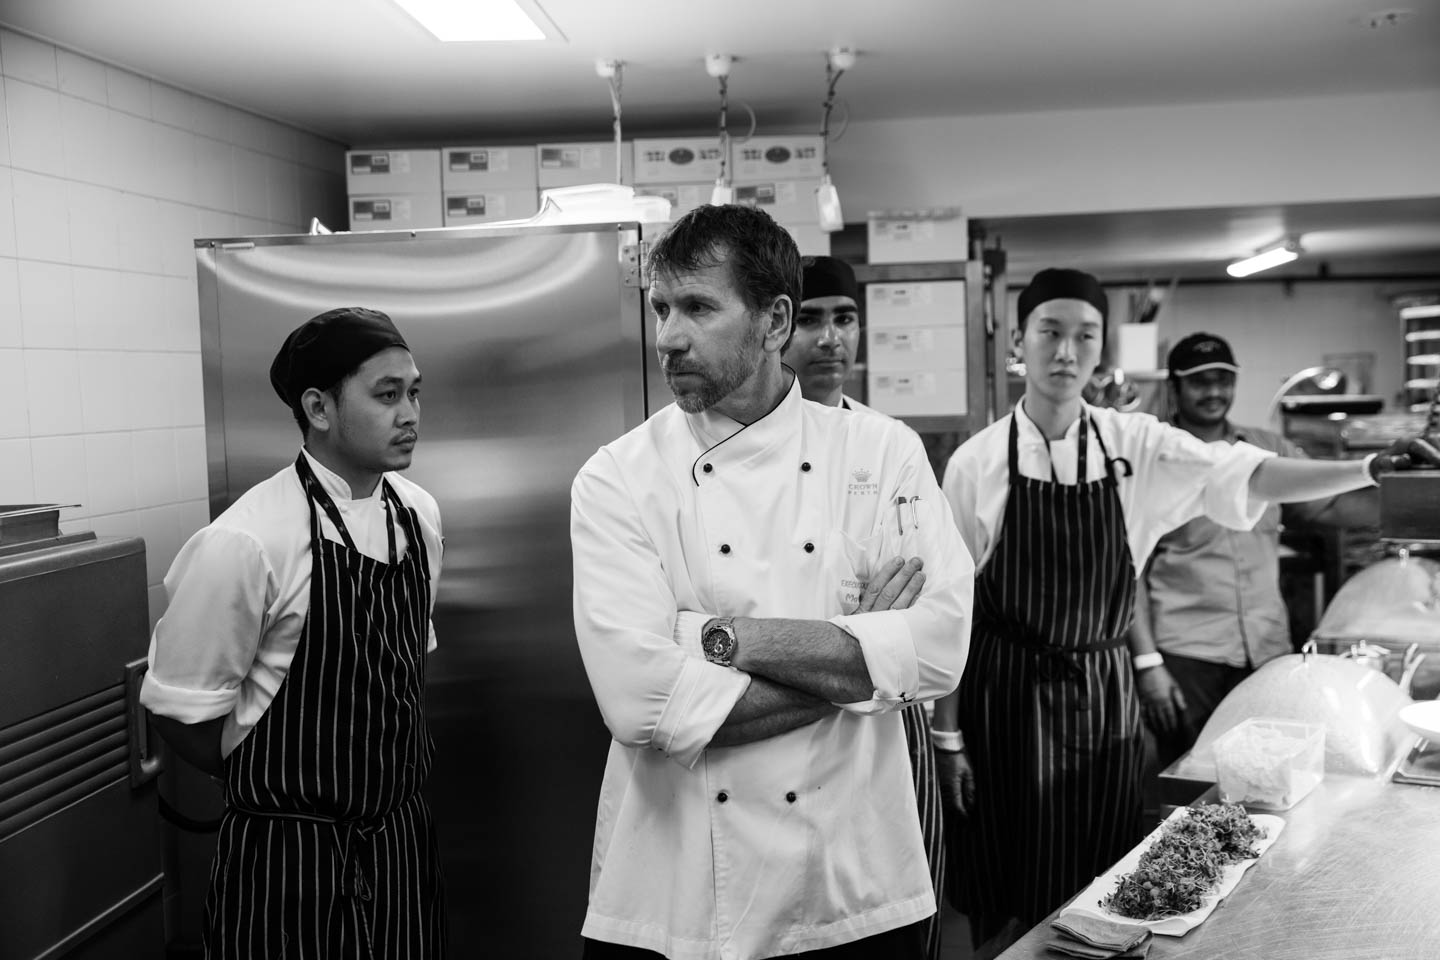 The team lead by executive sous-chef Matt Horne